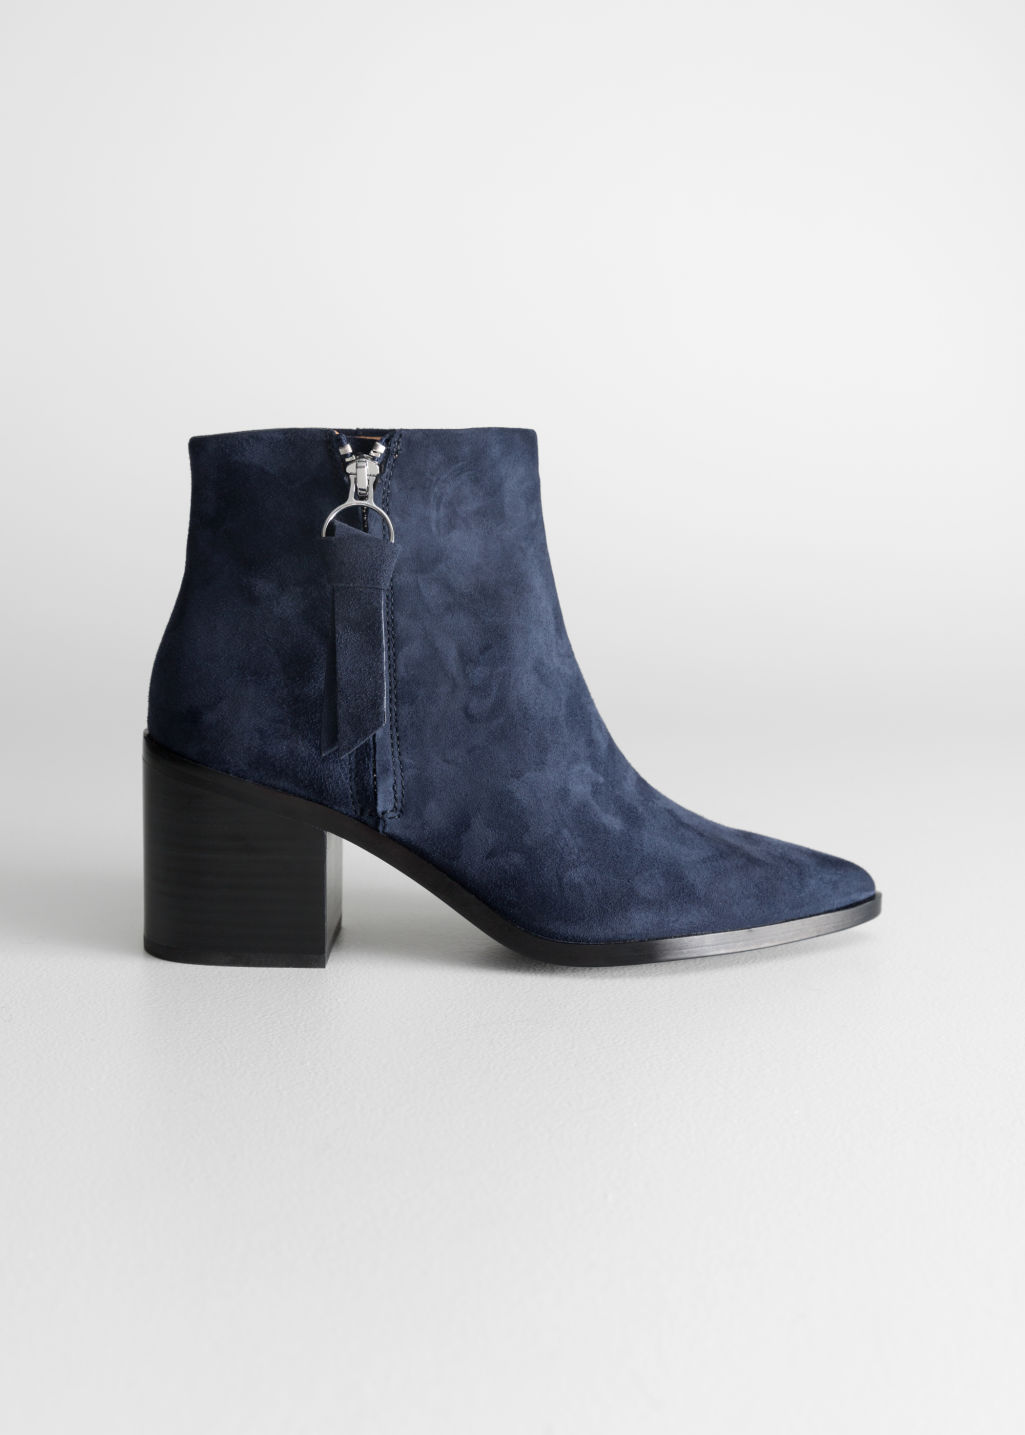 680c19c9a6a Pointed Ankle Boots - Navy - Ankleboots - & Other Stories